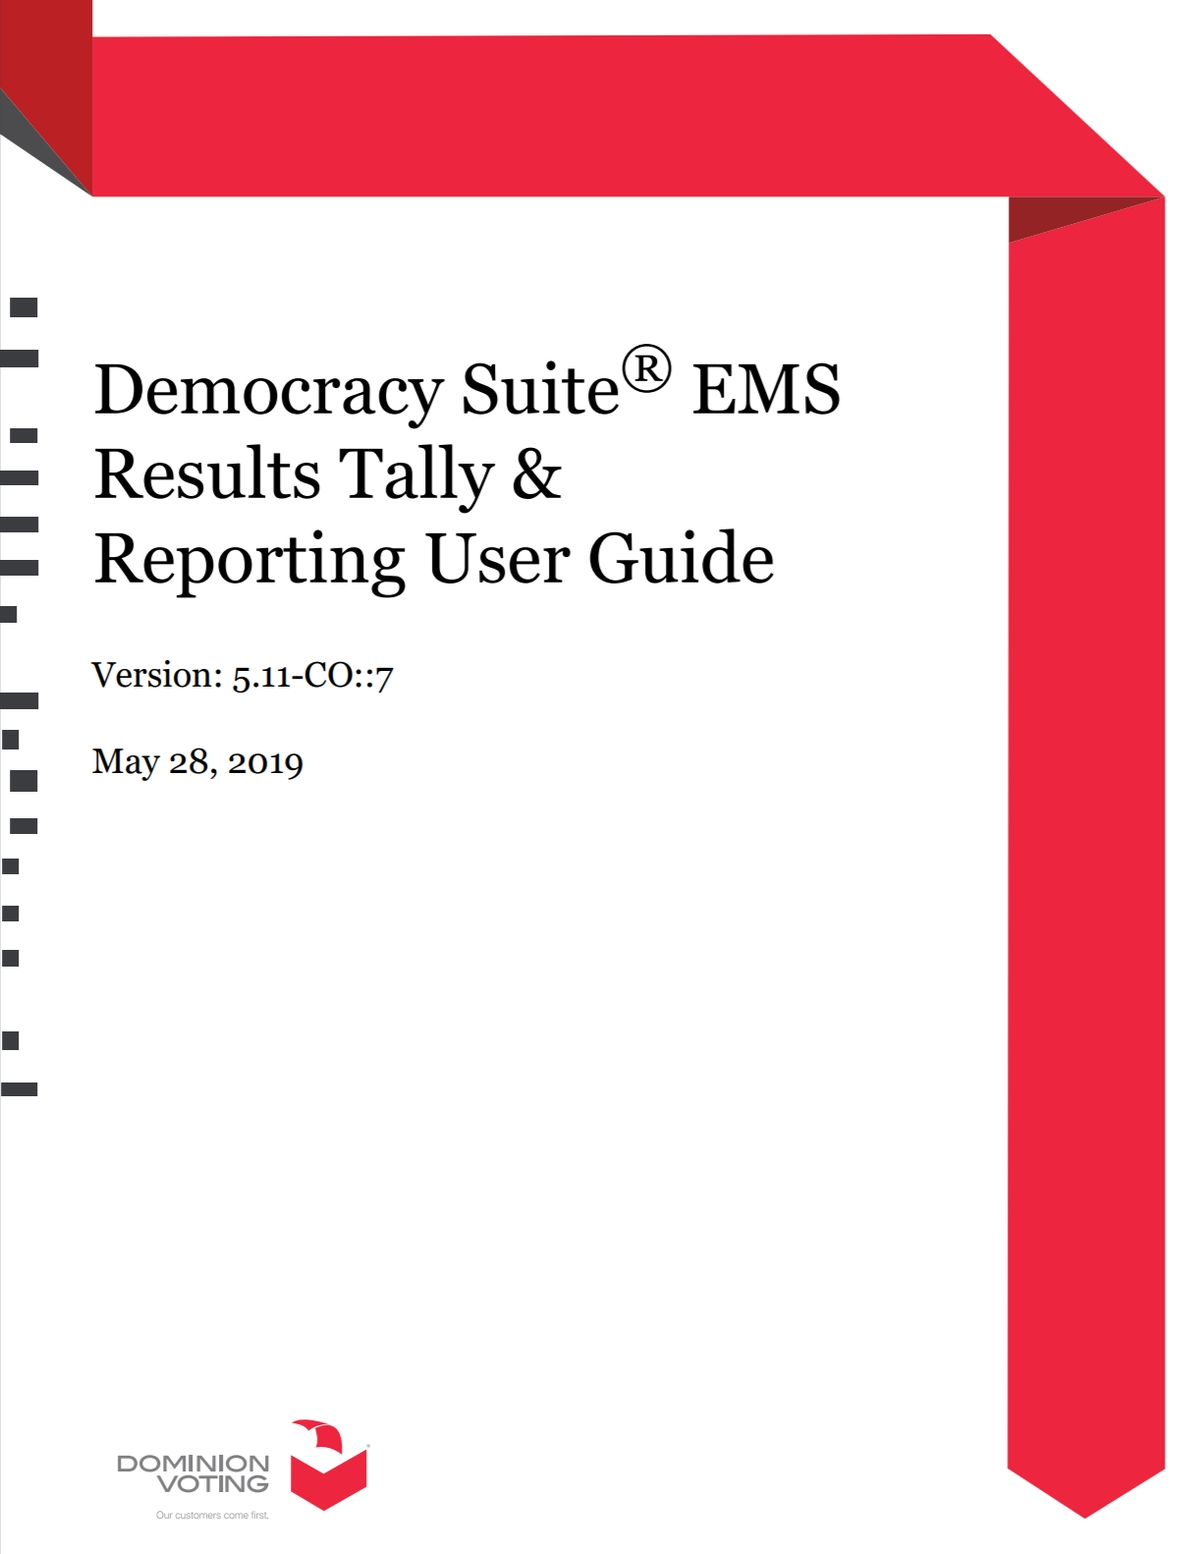 Democracy Suite EMS Results Tally And Reporting User Guide